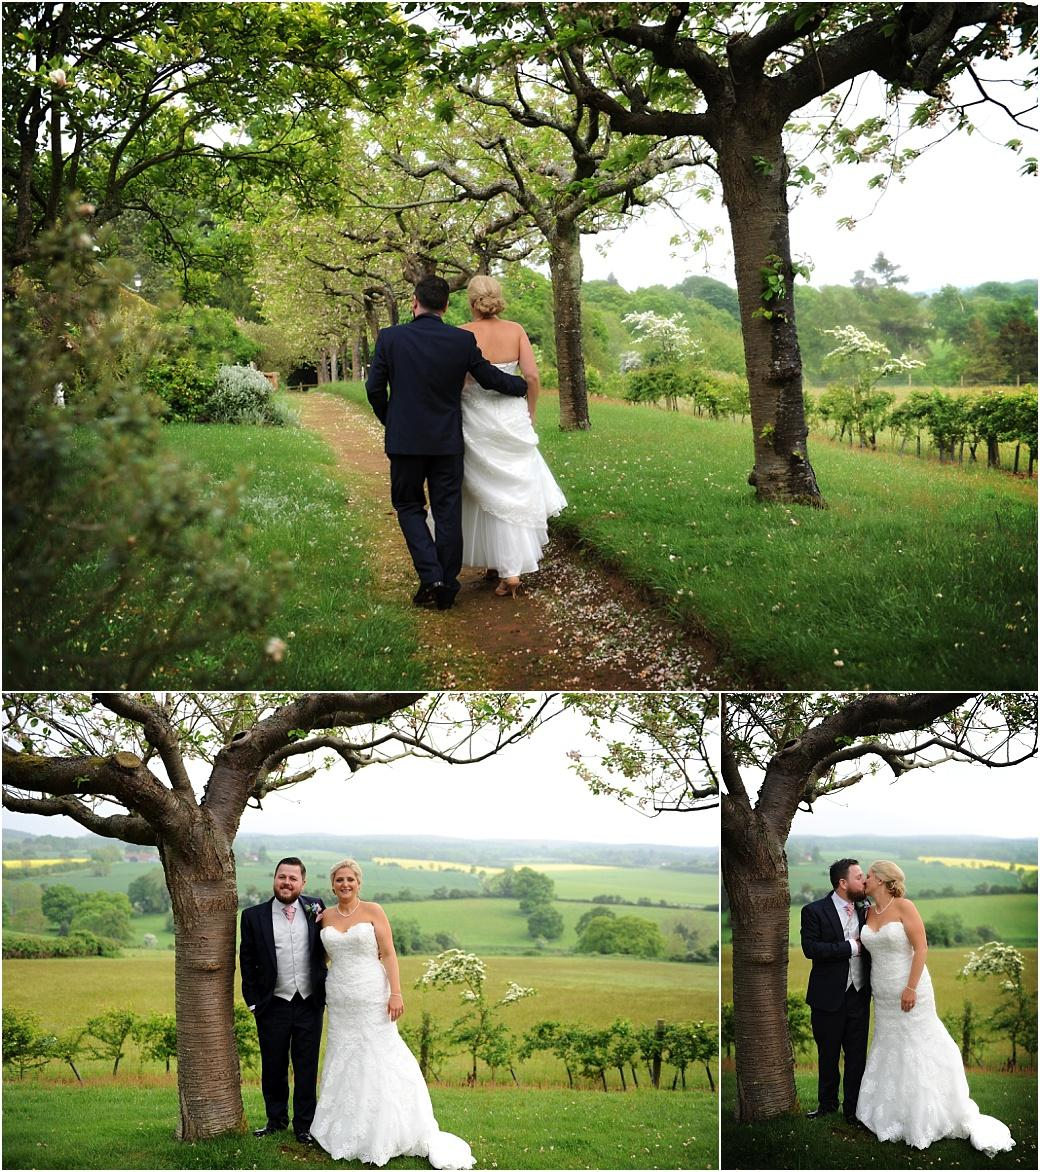 Bride and groom enjoying a romantic and scenic walk along the beautiful Cherry Tree Walk at Burrows Lea Country House with its stunning views over the Surrey Hills